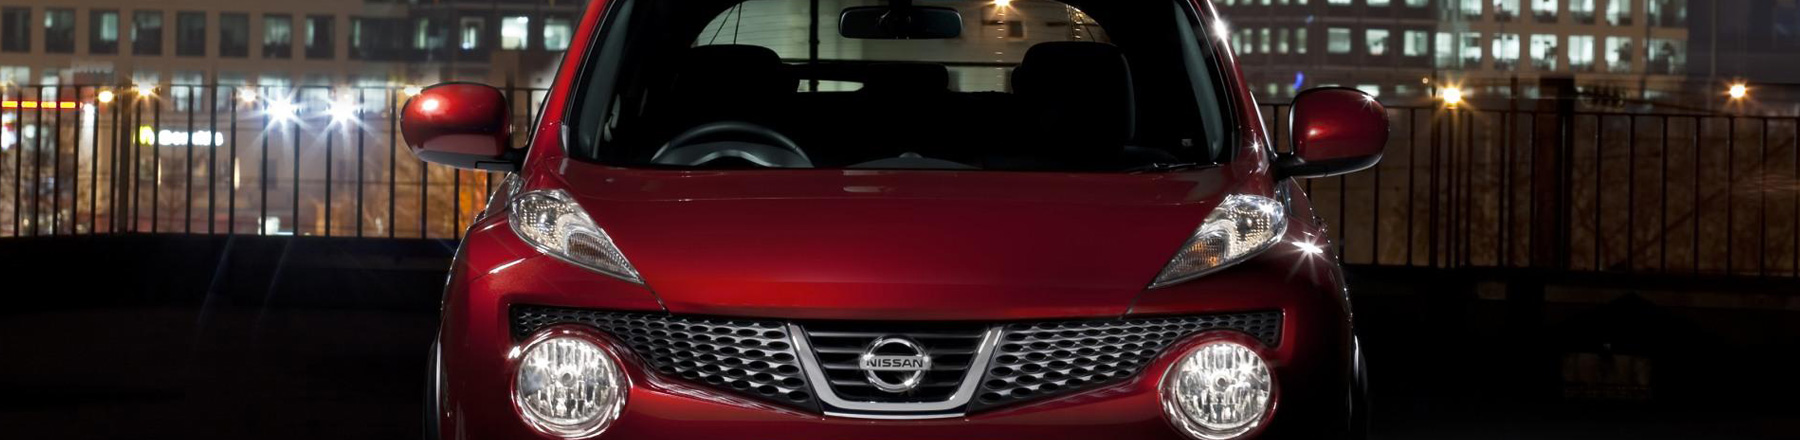 nissan service and parts specials